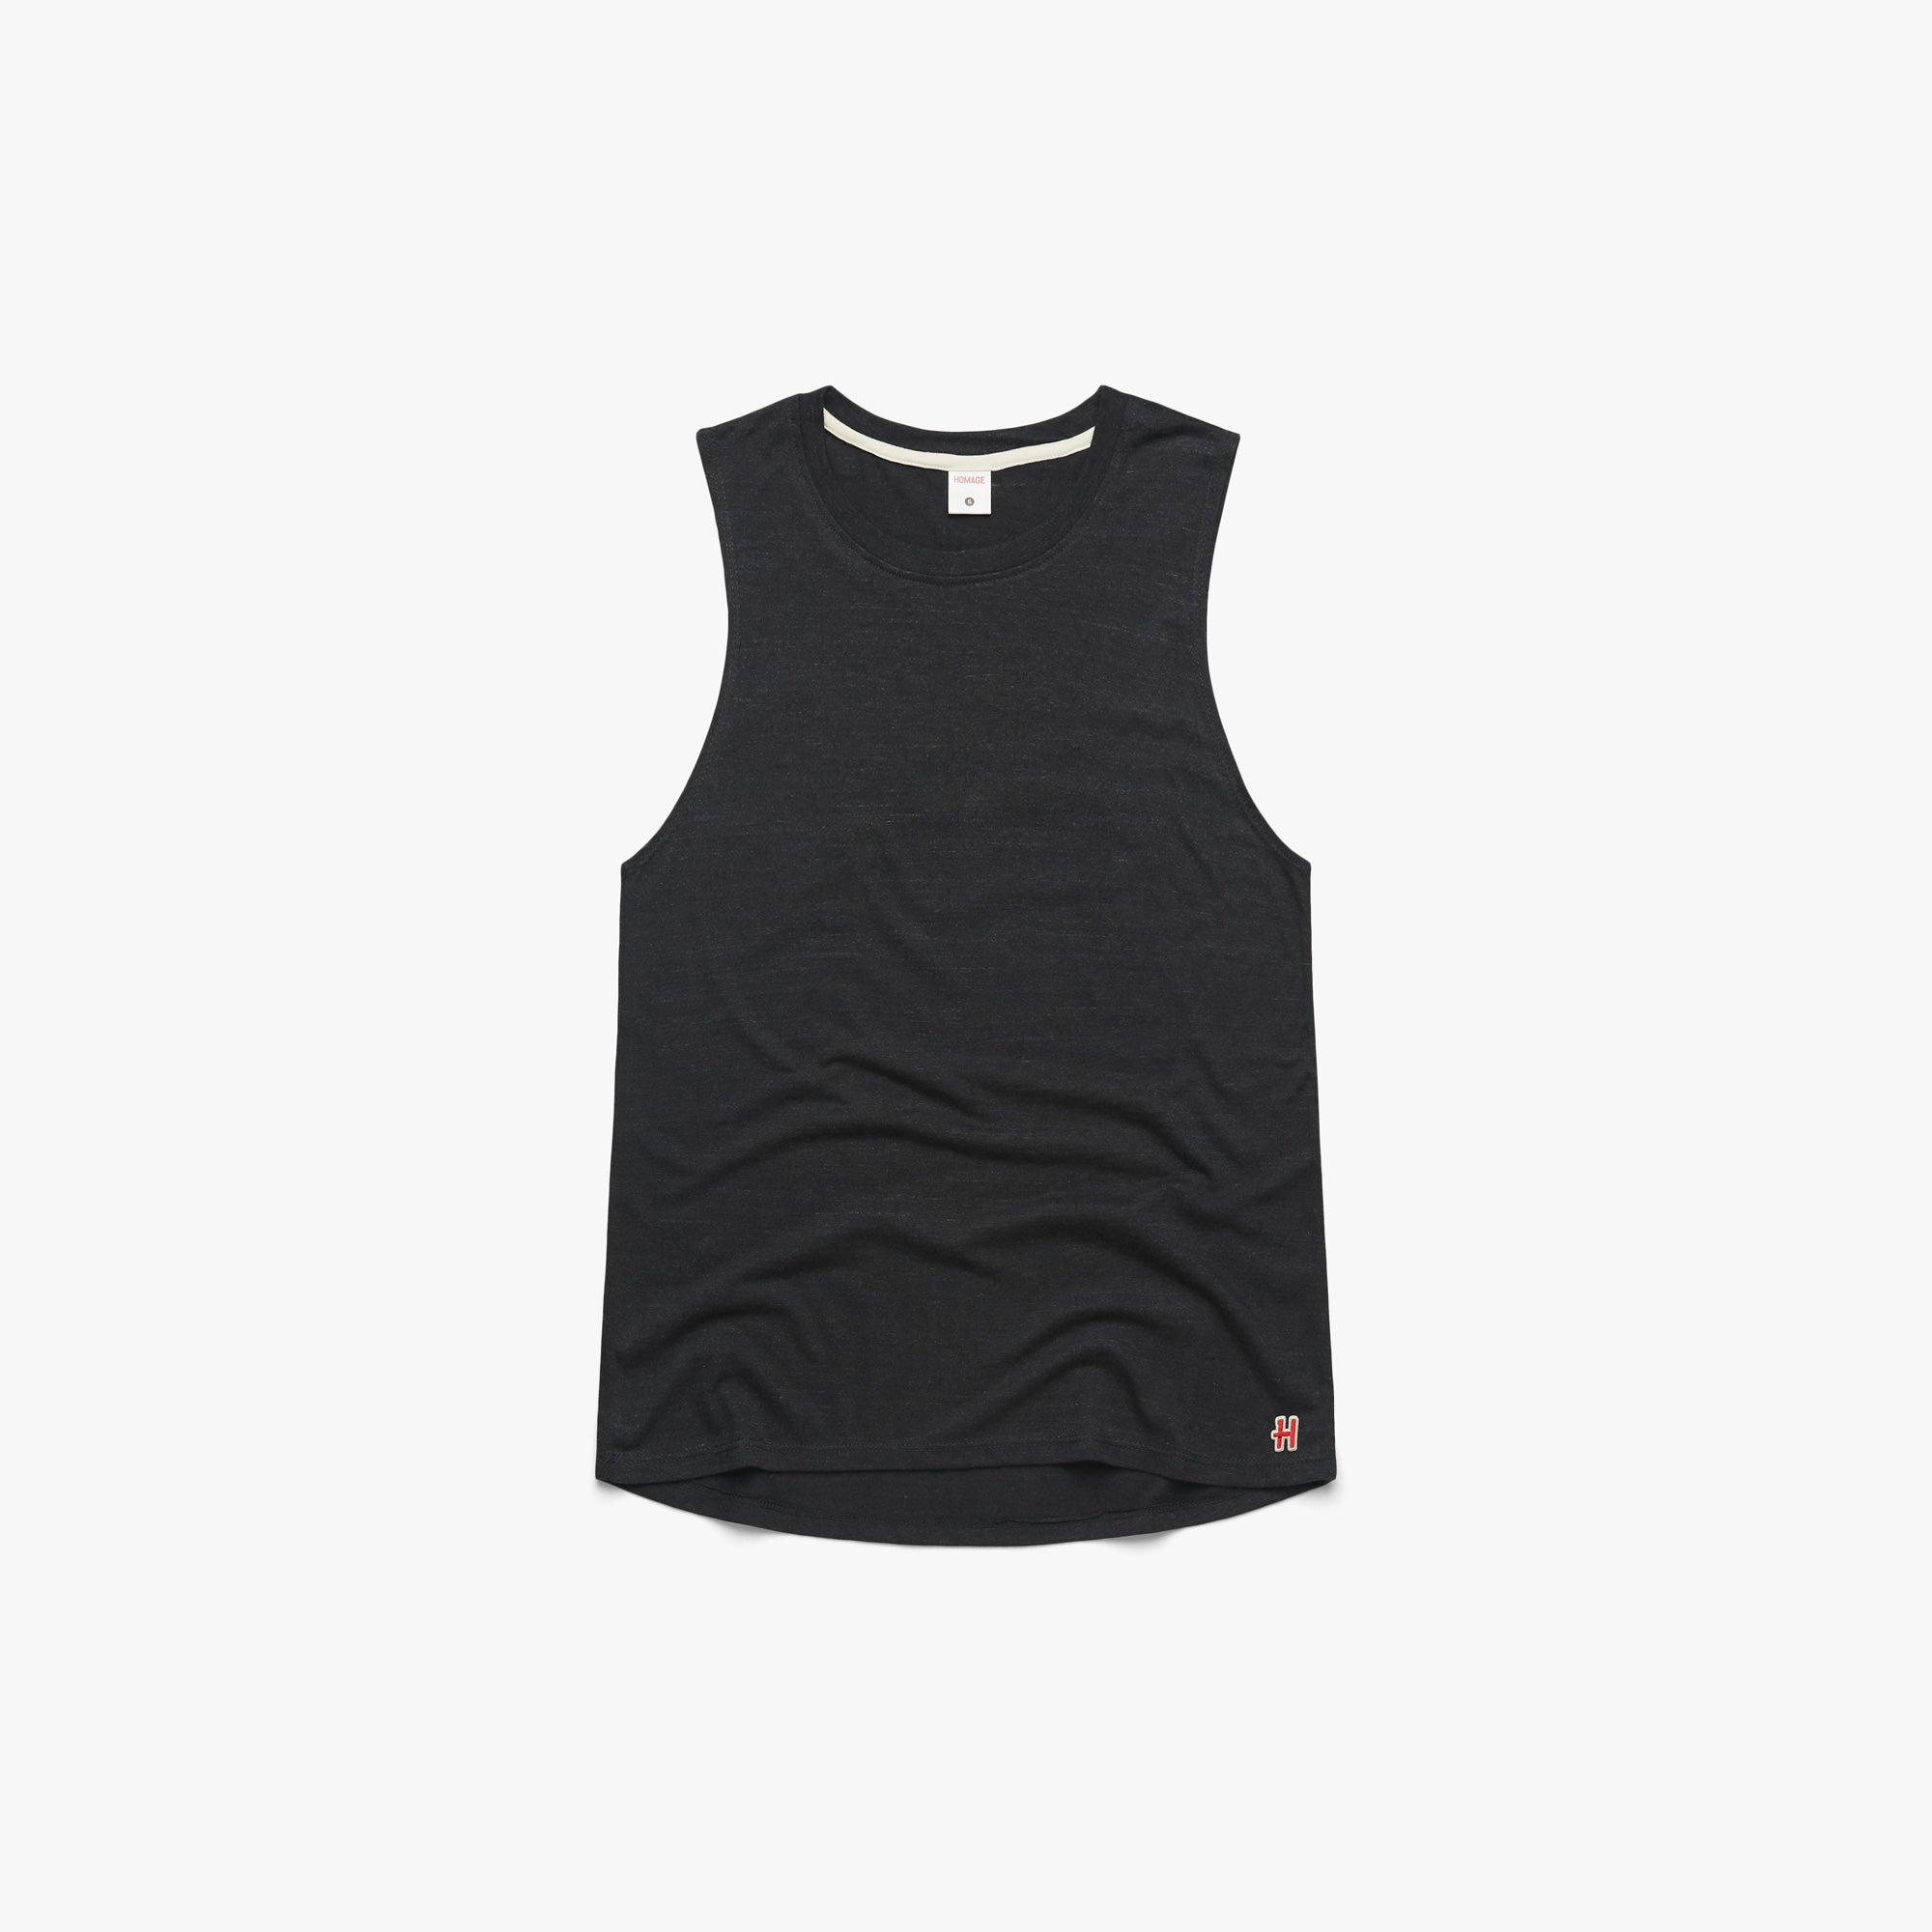 Women's Go-To Sleeveless Tee